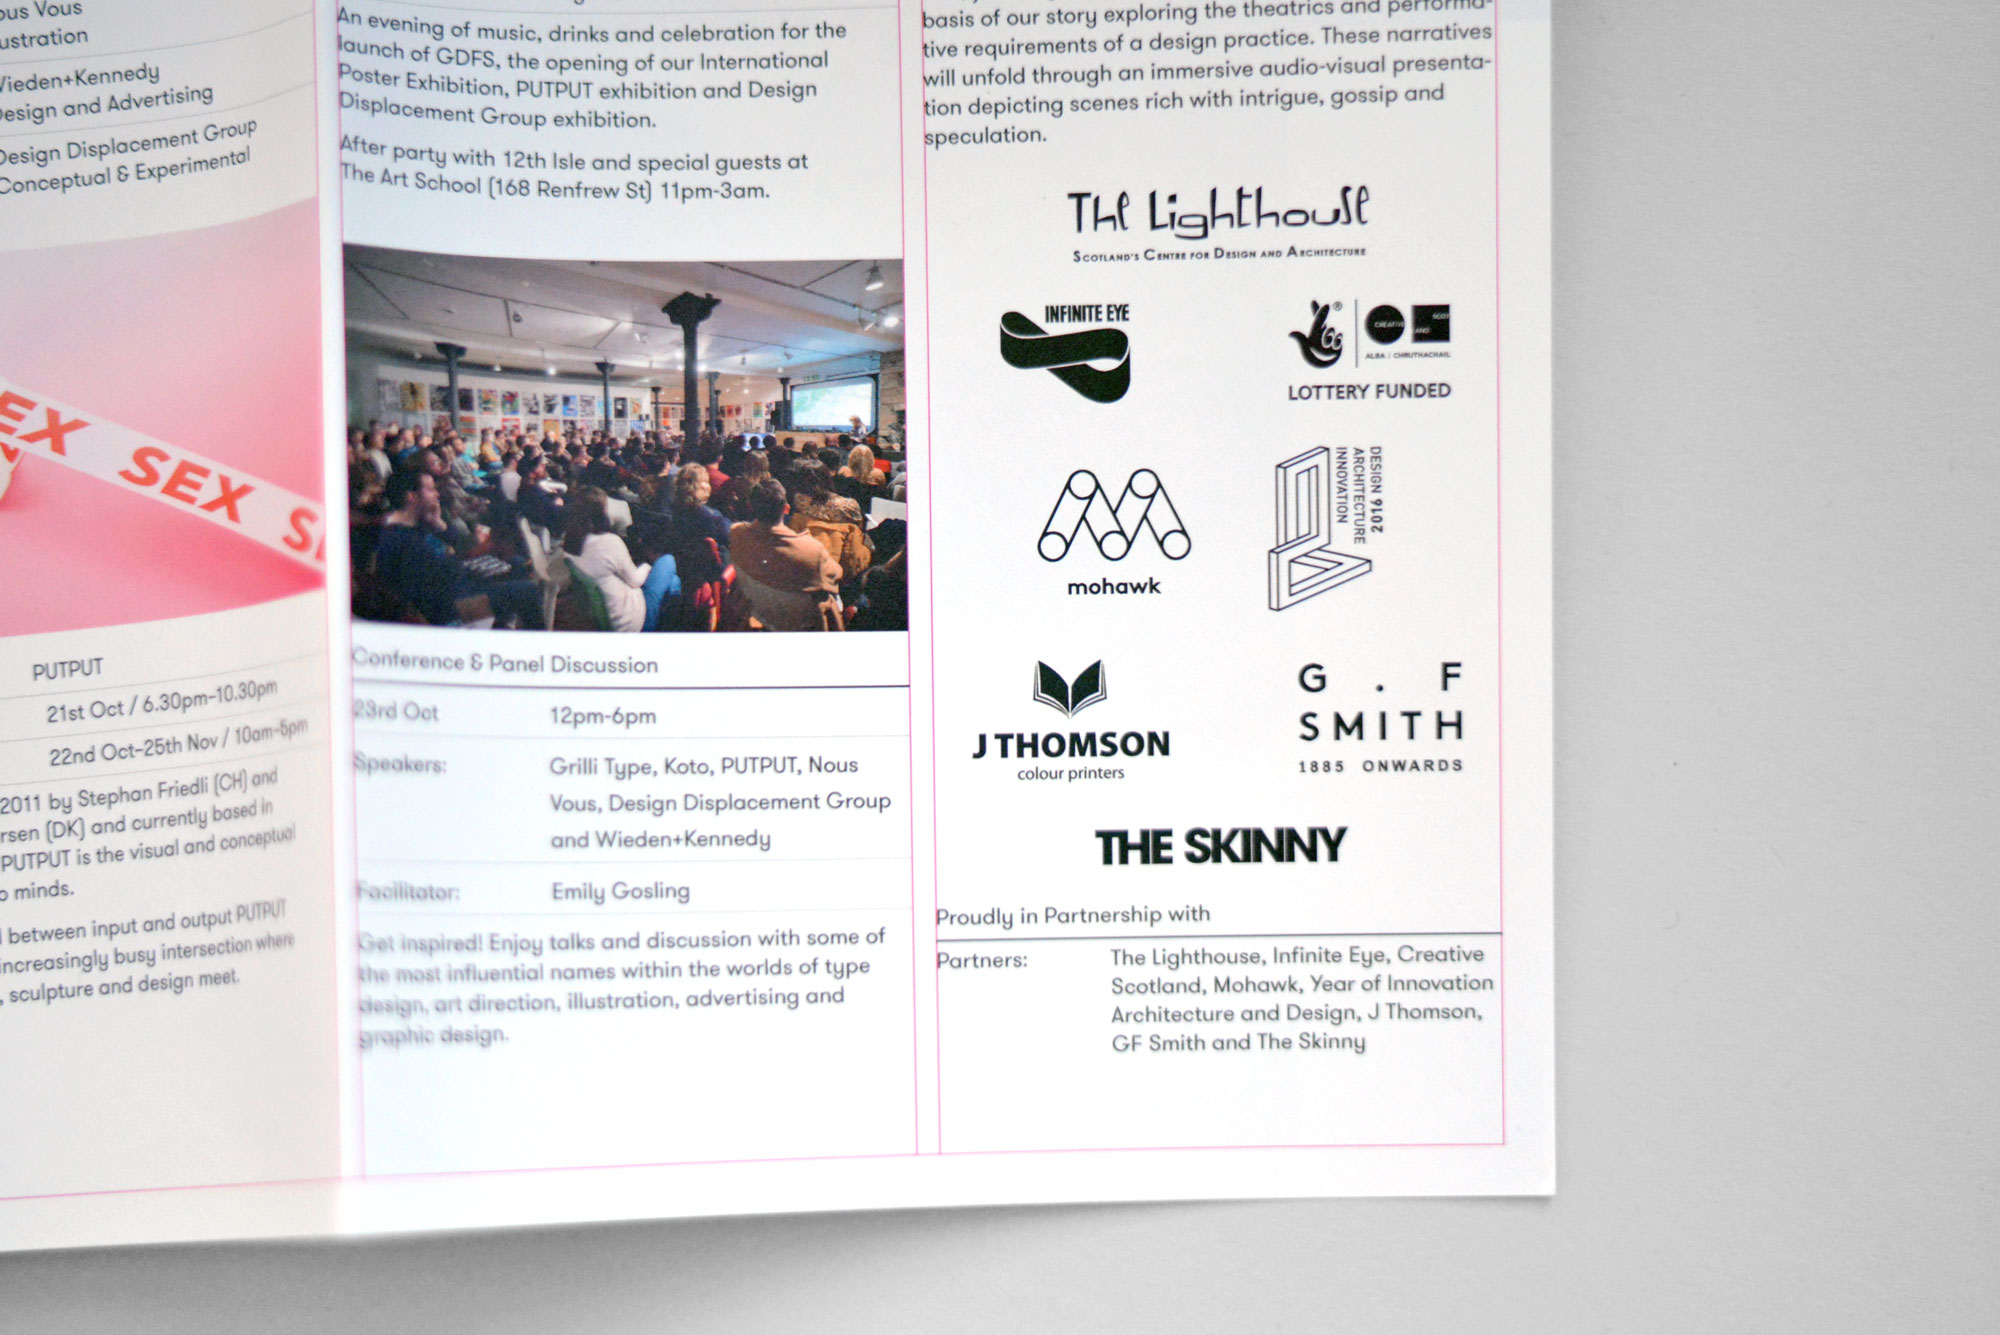 Poster design article - For Shorts Film Festival Posters And Postcards Were Printed To Promote The Event Along With Programmes Detailing The Talented Film Makers And Films Being